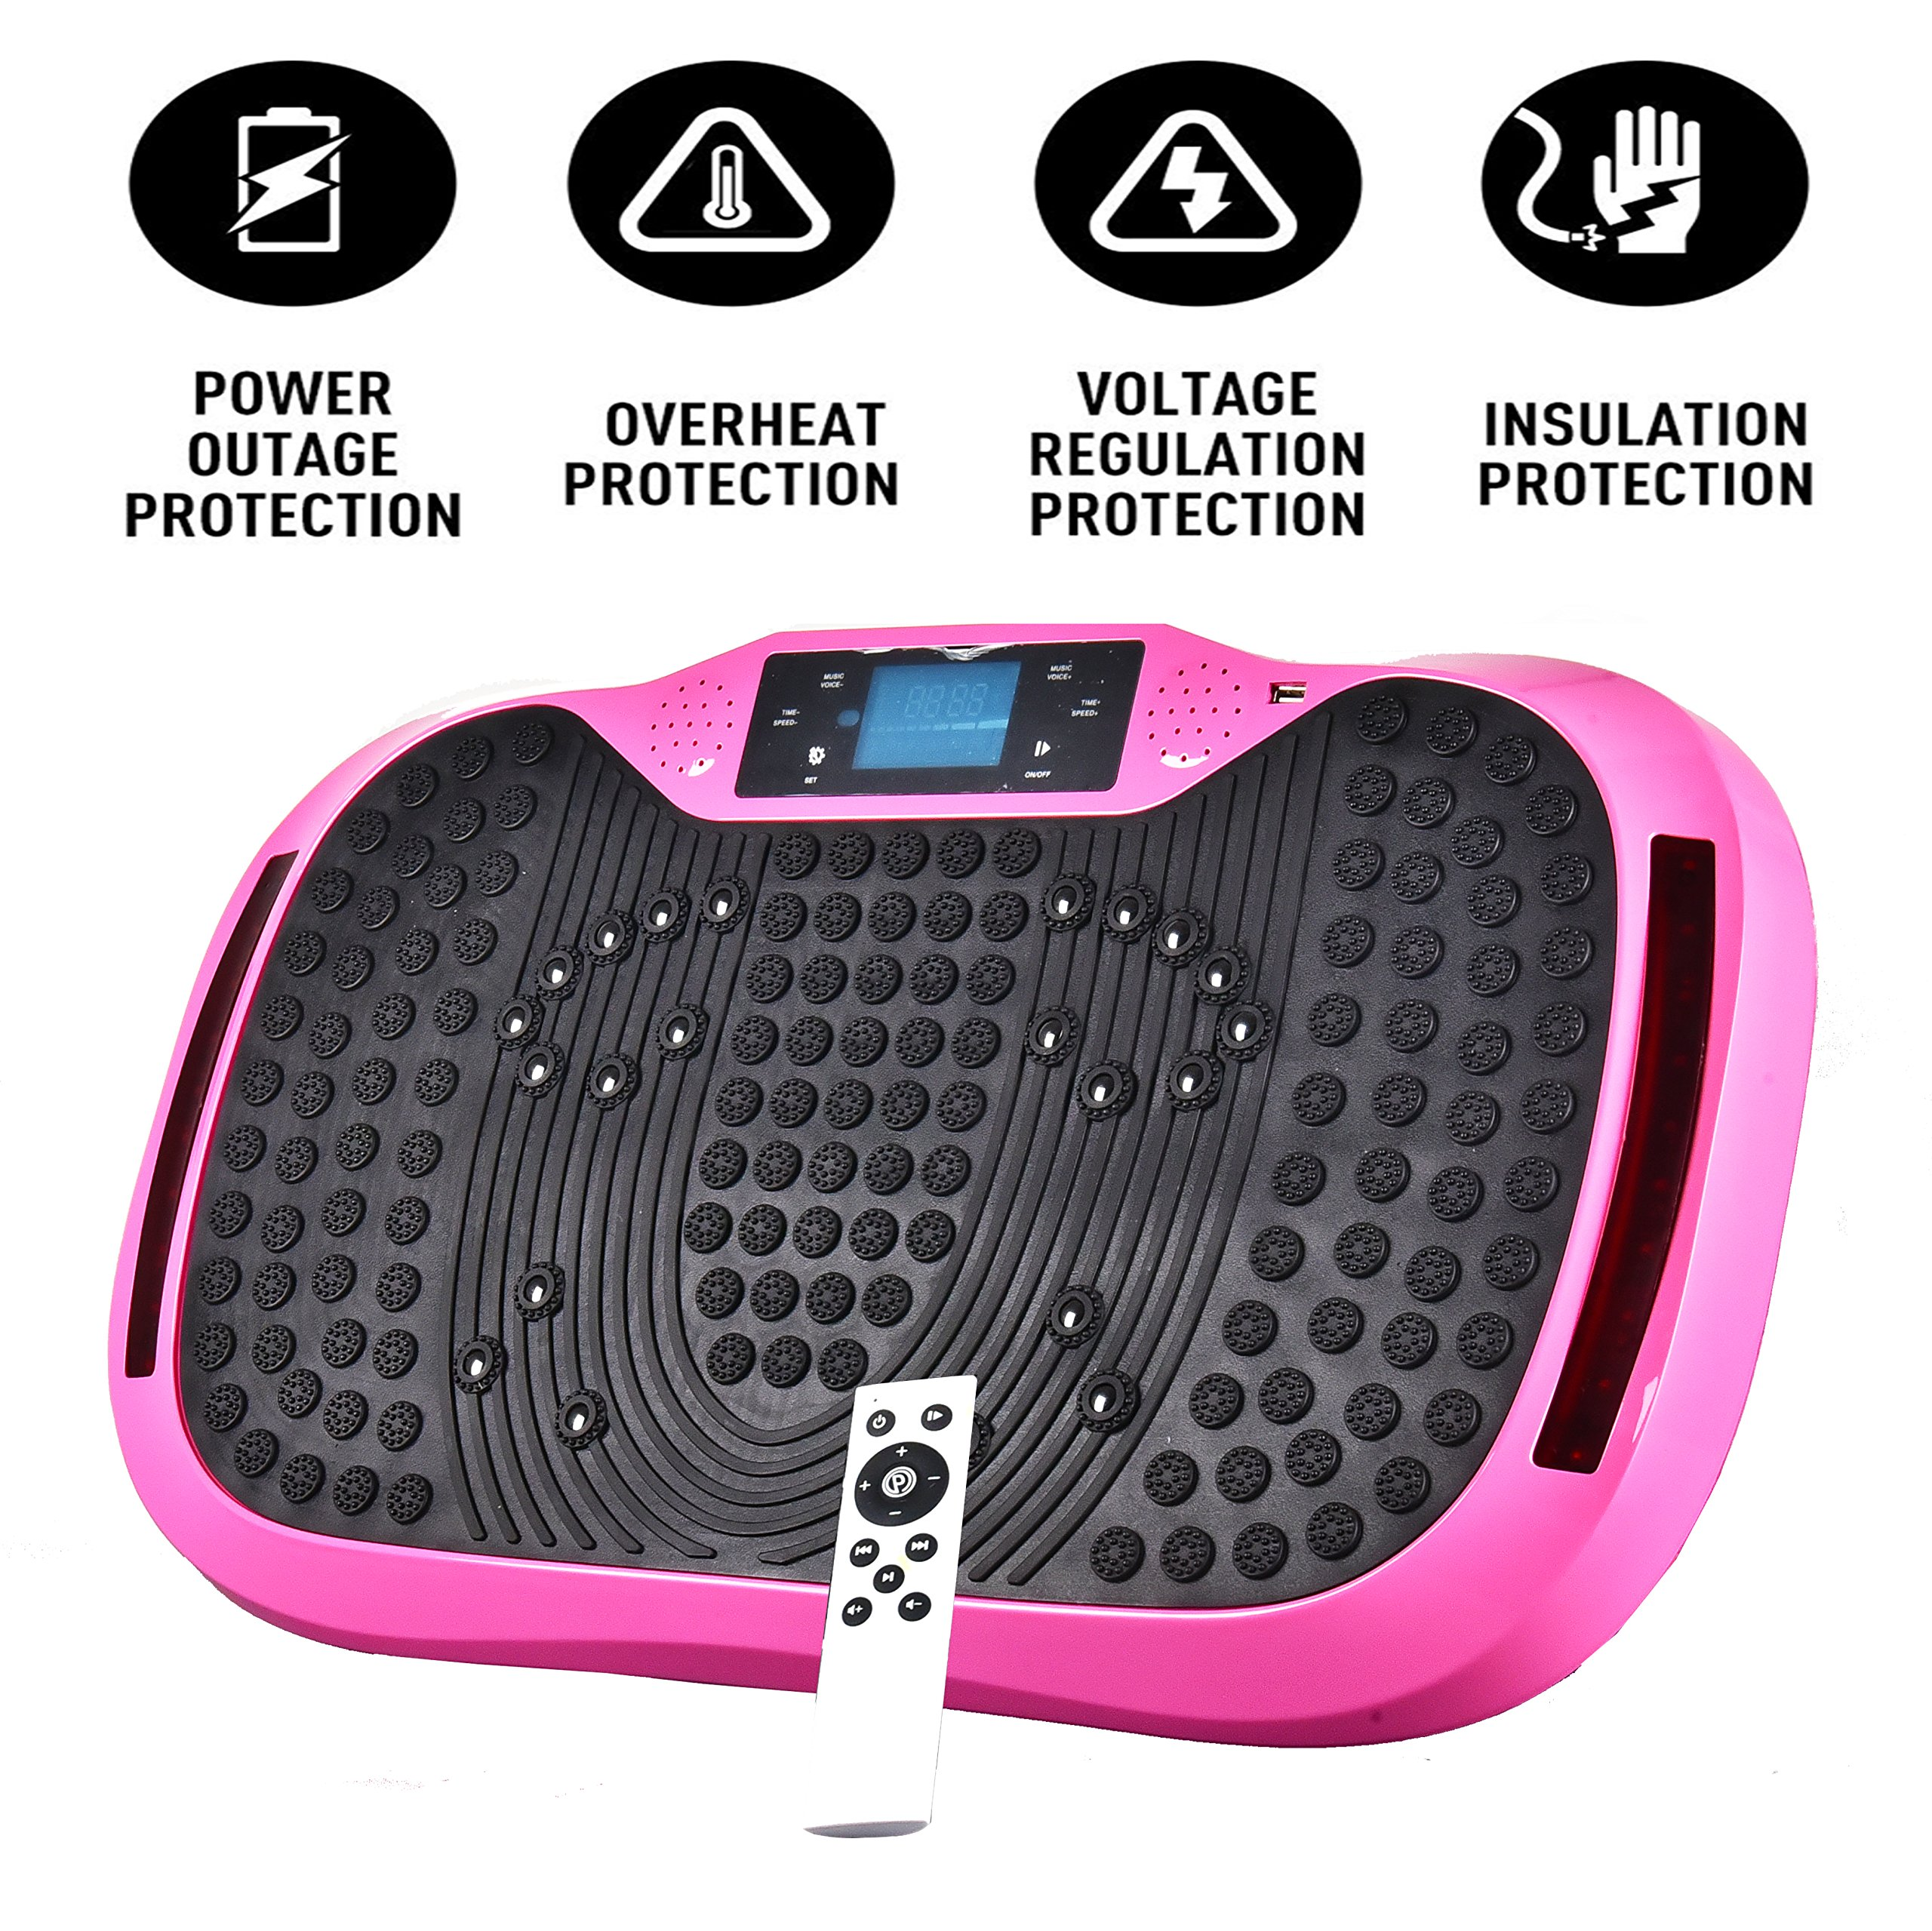 Reliancer Built-in Music Player Fitness Vibration Platform Whole Full Body Shaped Crazy Fit Plate Massage Workout Trainer Exercise Machine Plate w/Integrated USB Port&LED Light (W/Music-Pink) by Reliancer (Image #9)